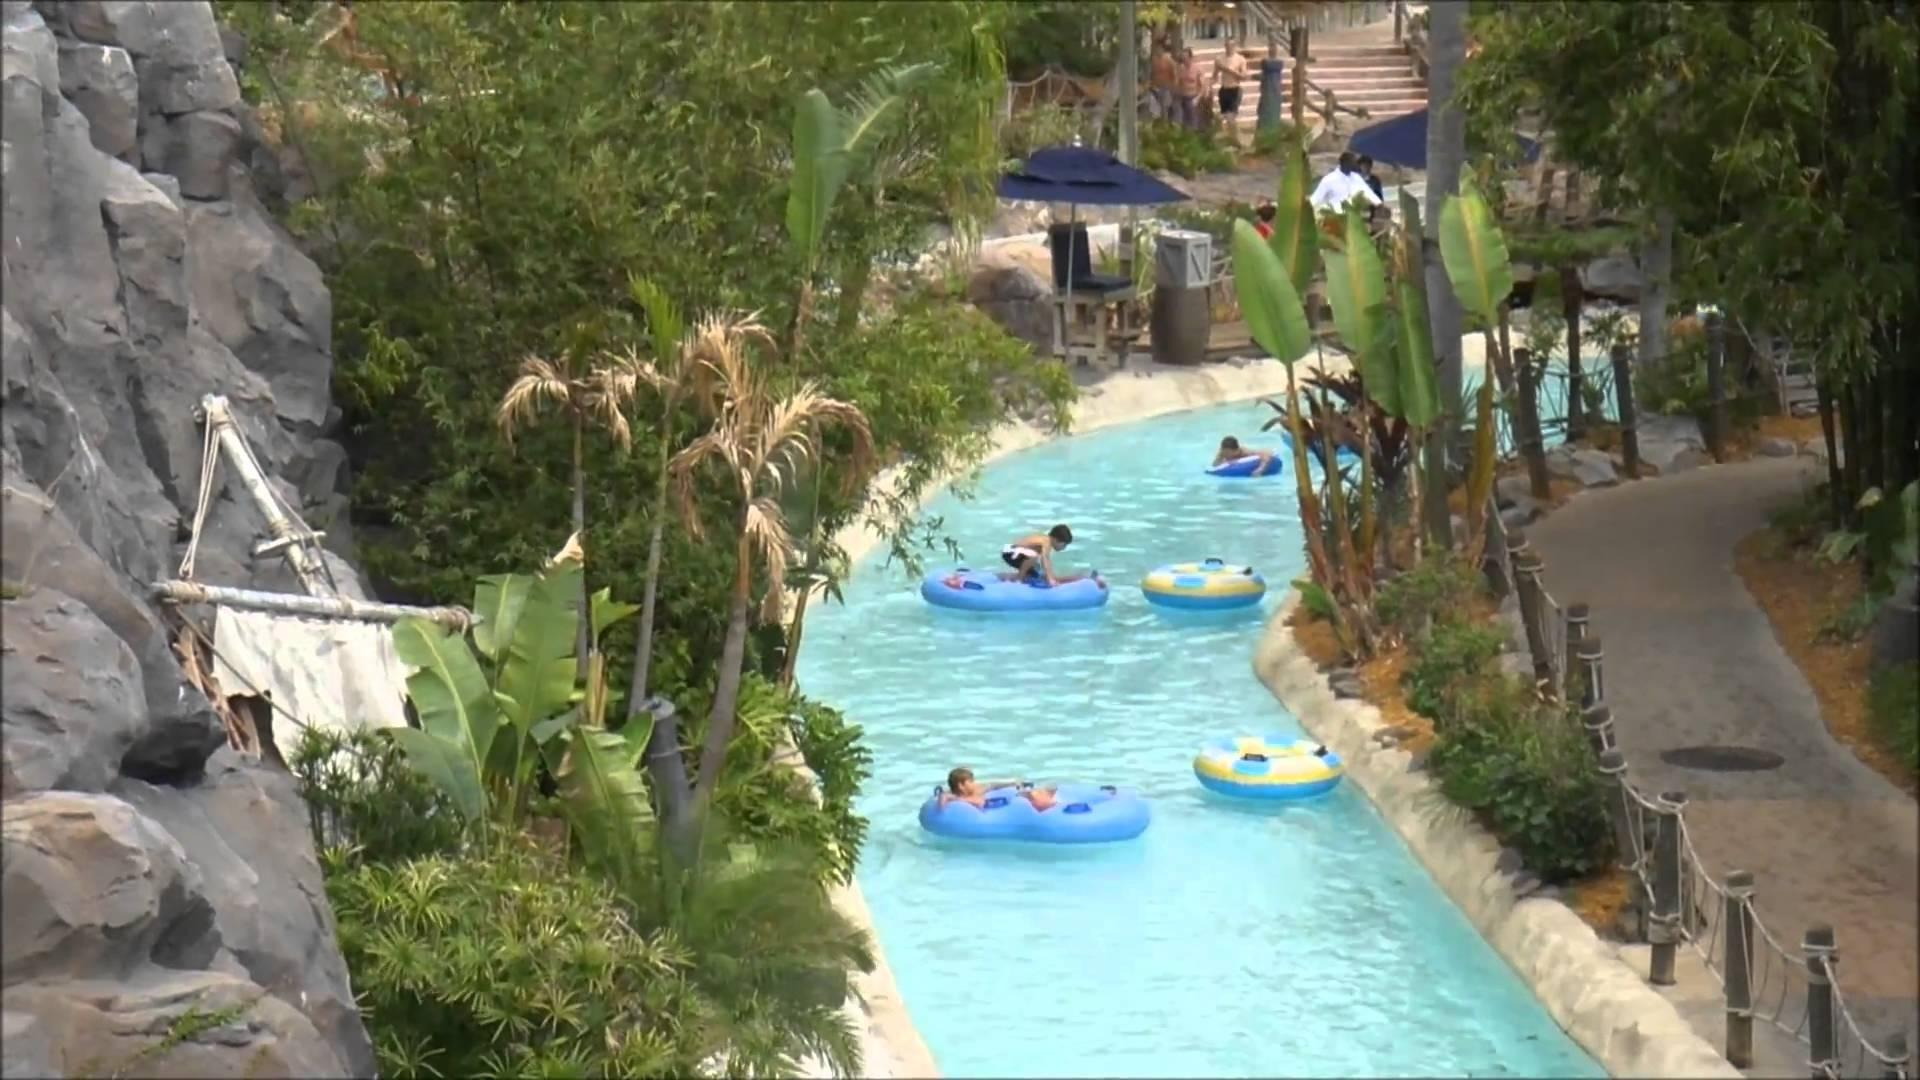 Castaway Creek - Orlando Tickets, Hotels, Packages